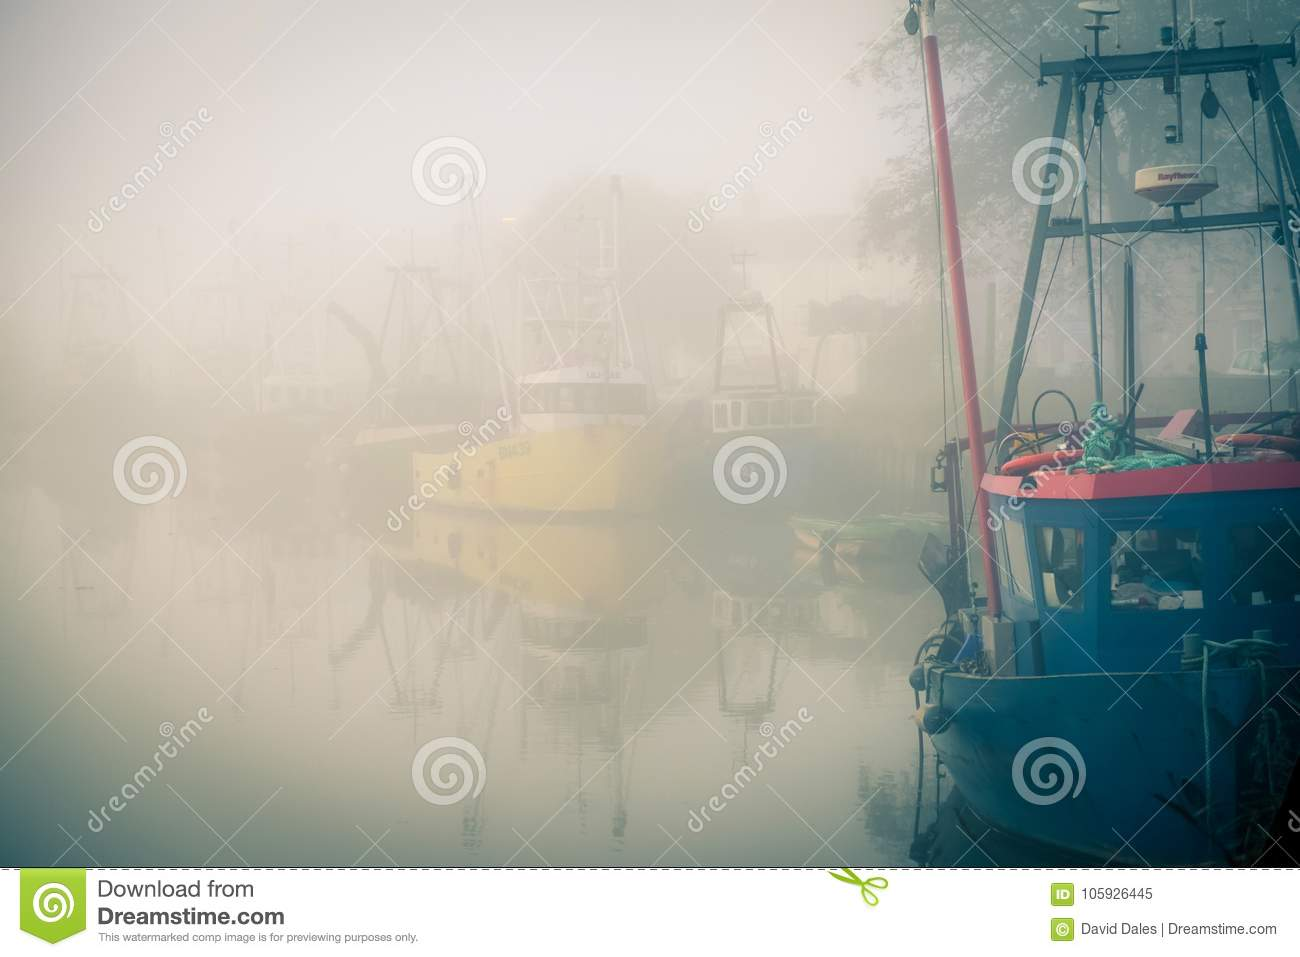 Fishing boats moored on a misty river.